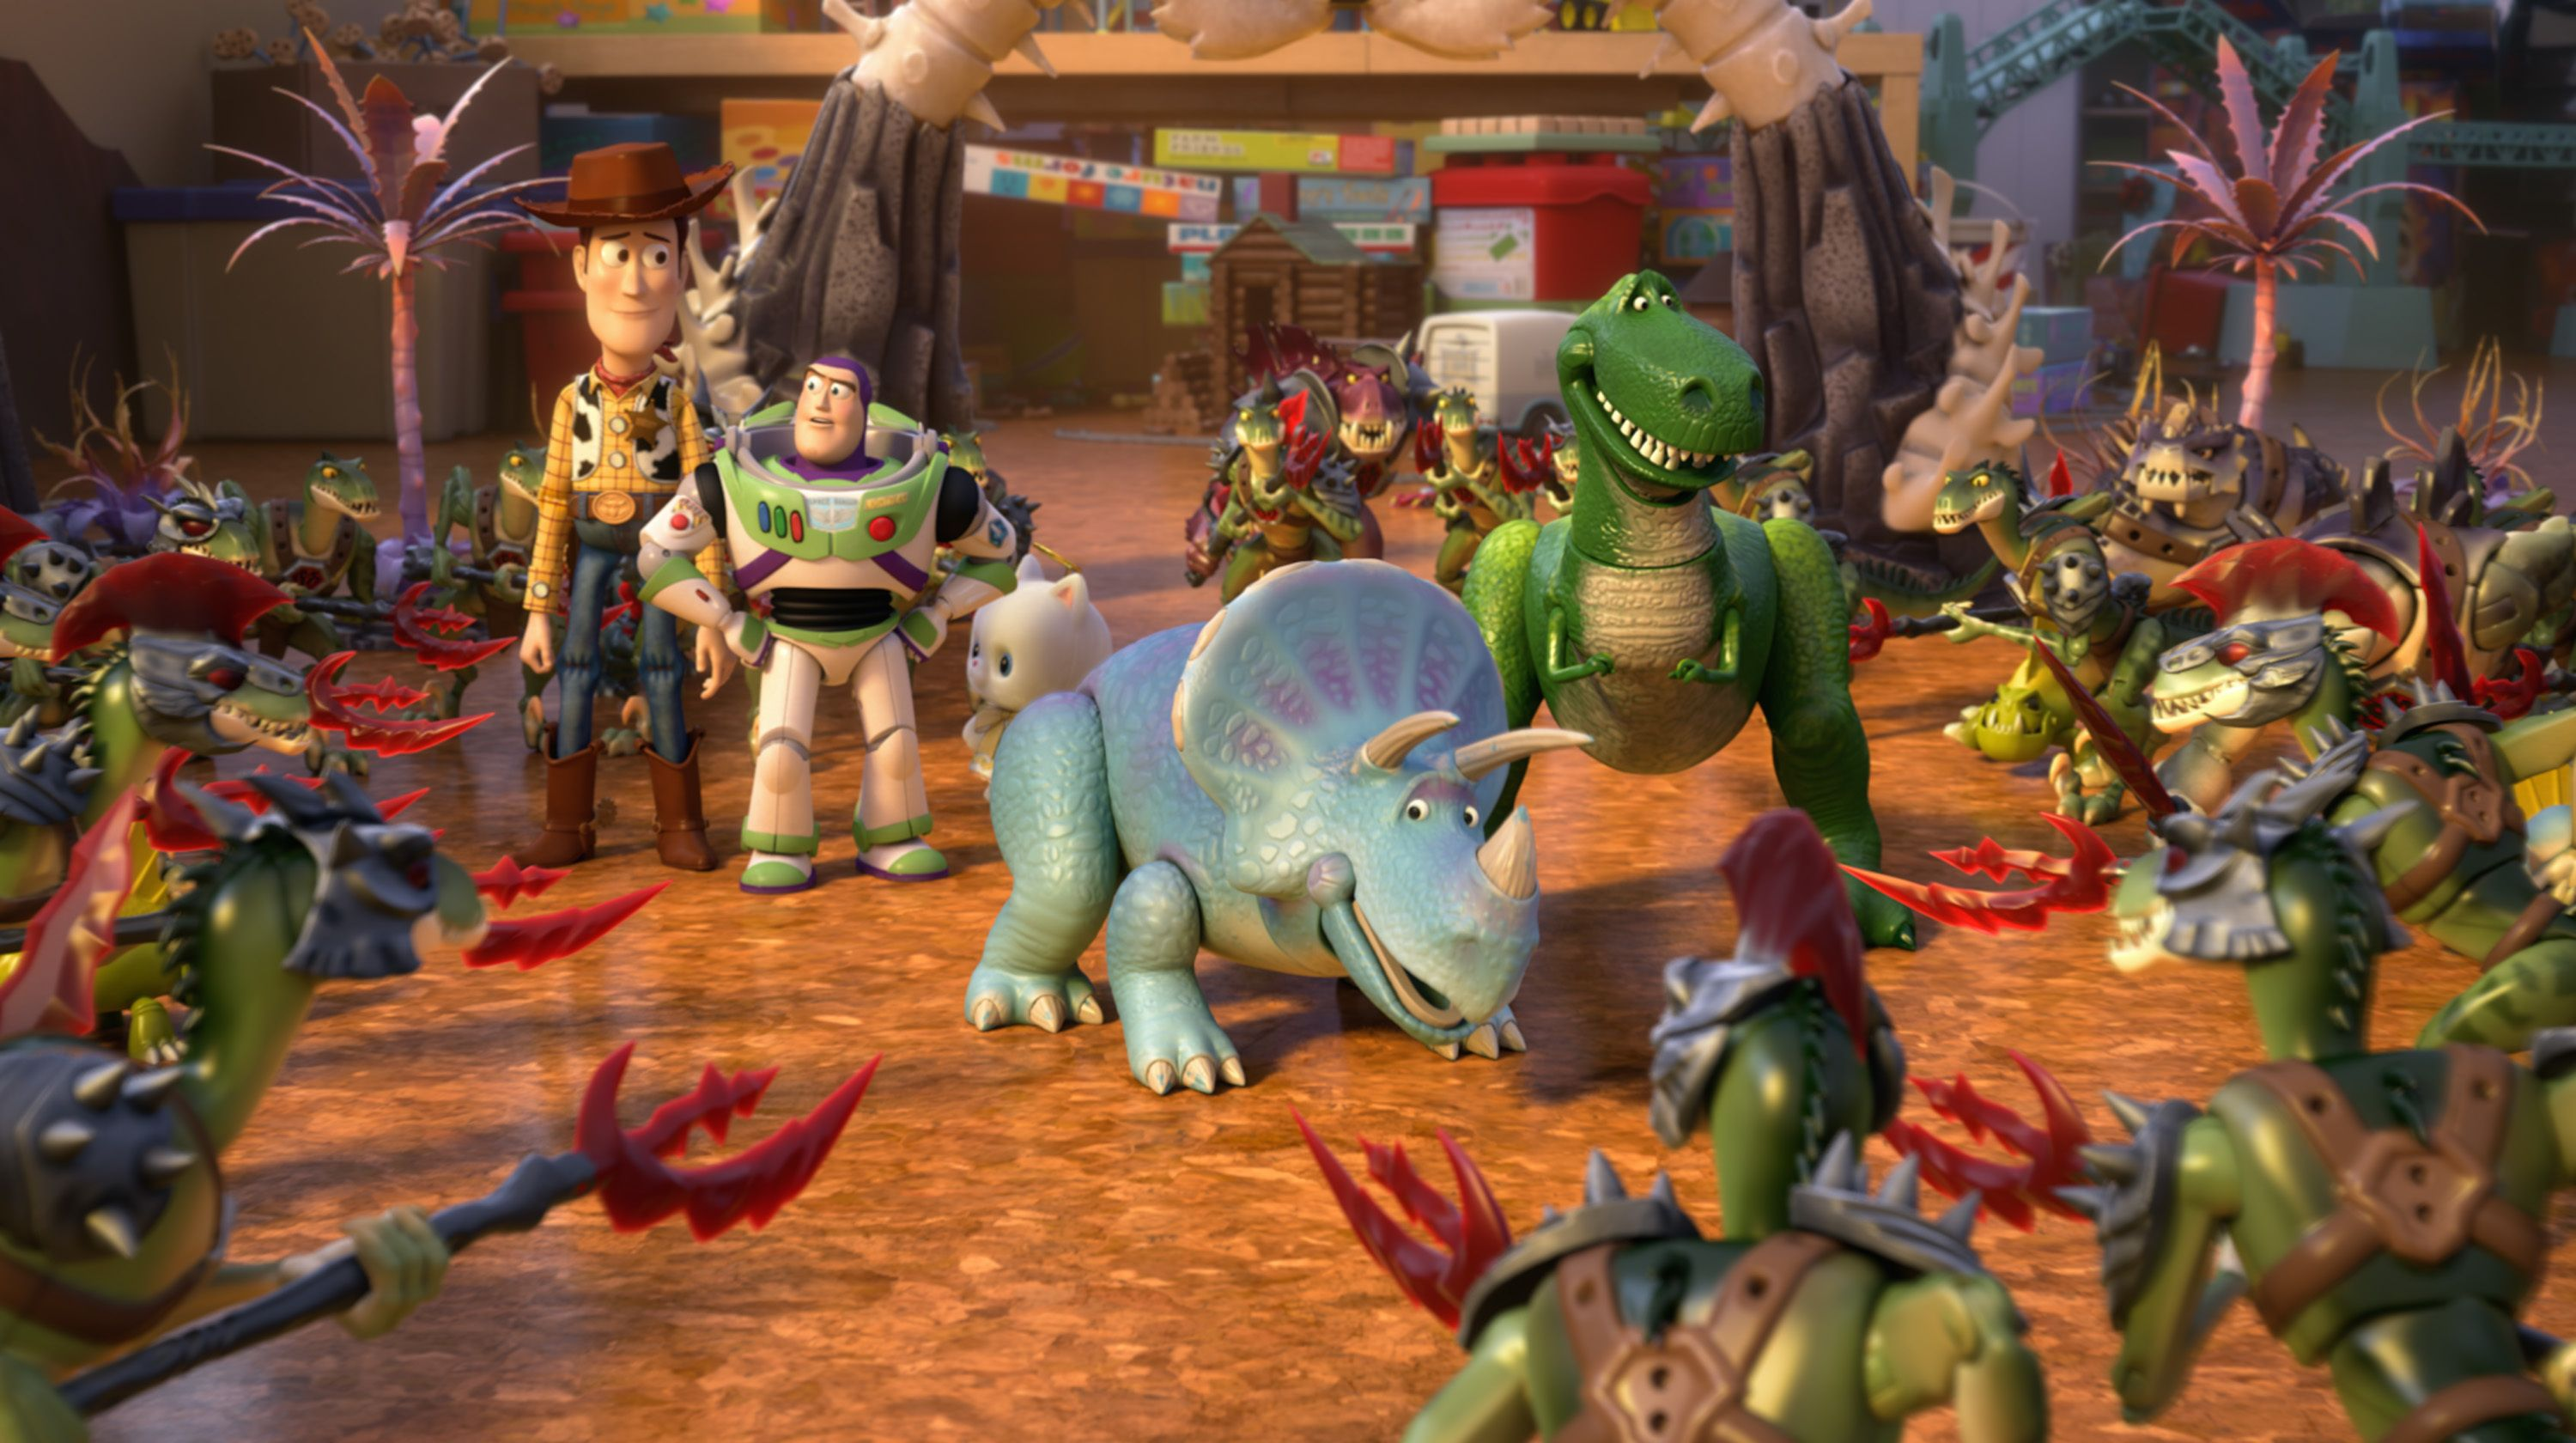 toy story that time forgot movie review - Toy Story Christmas Movie